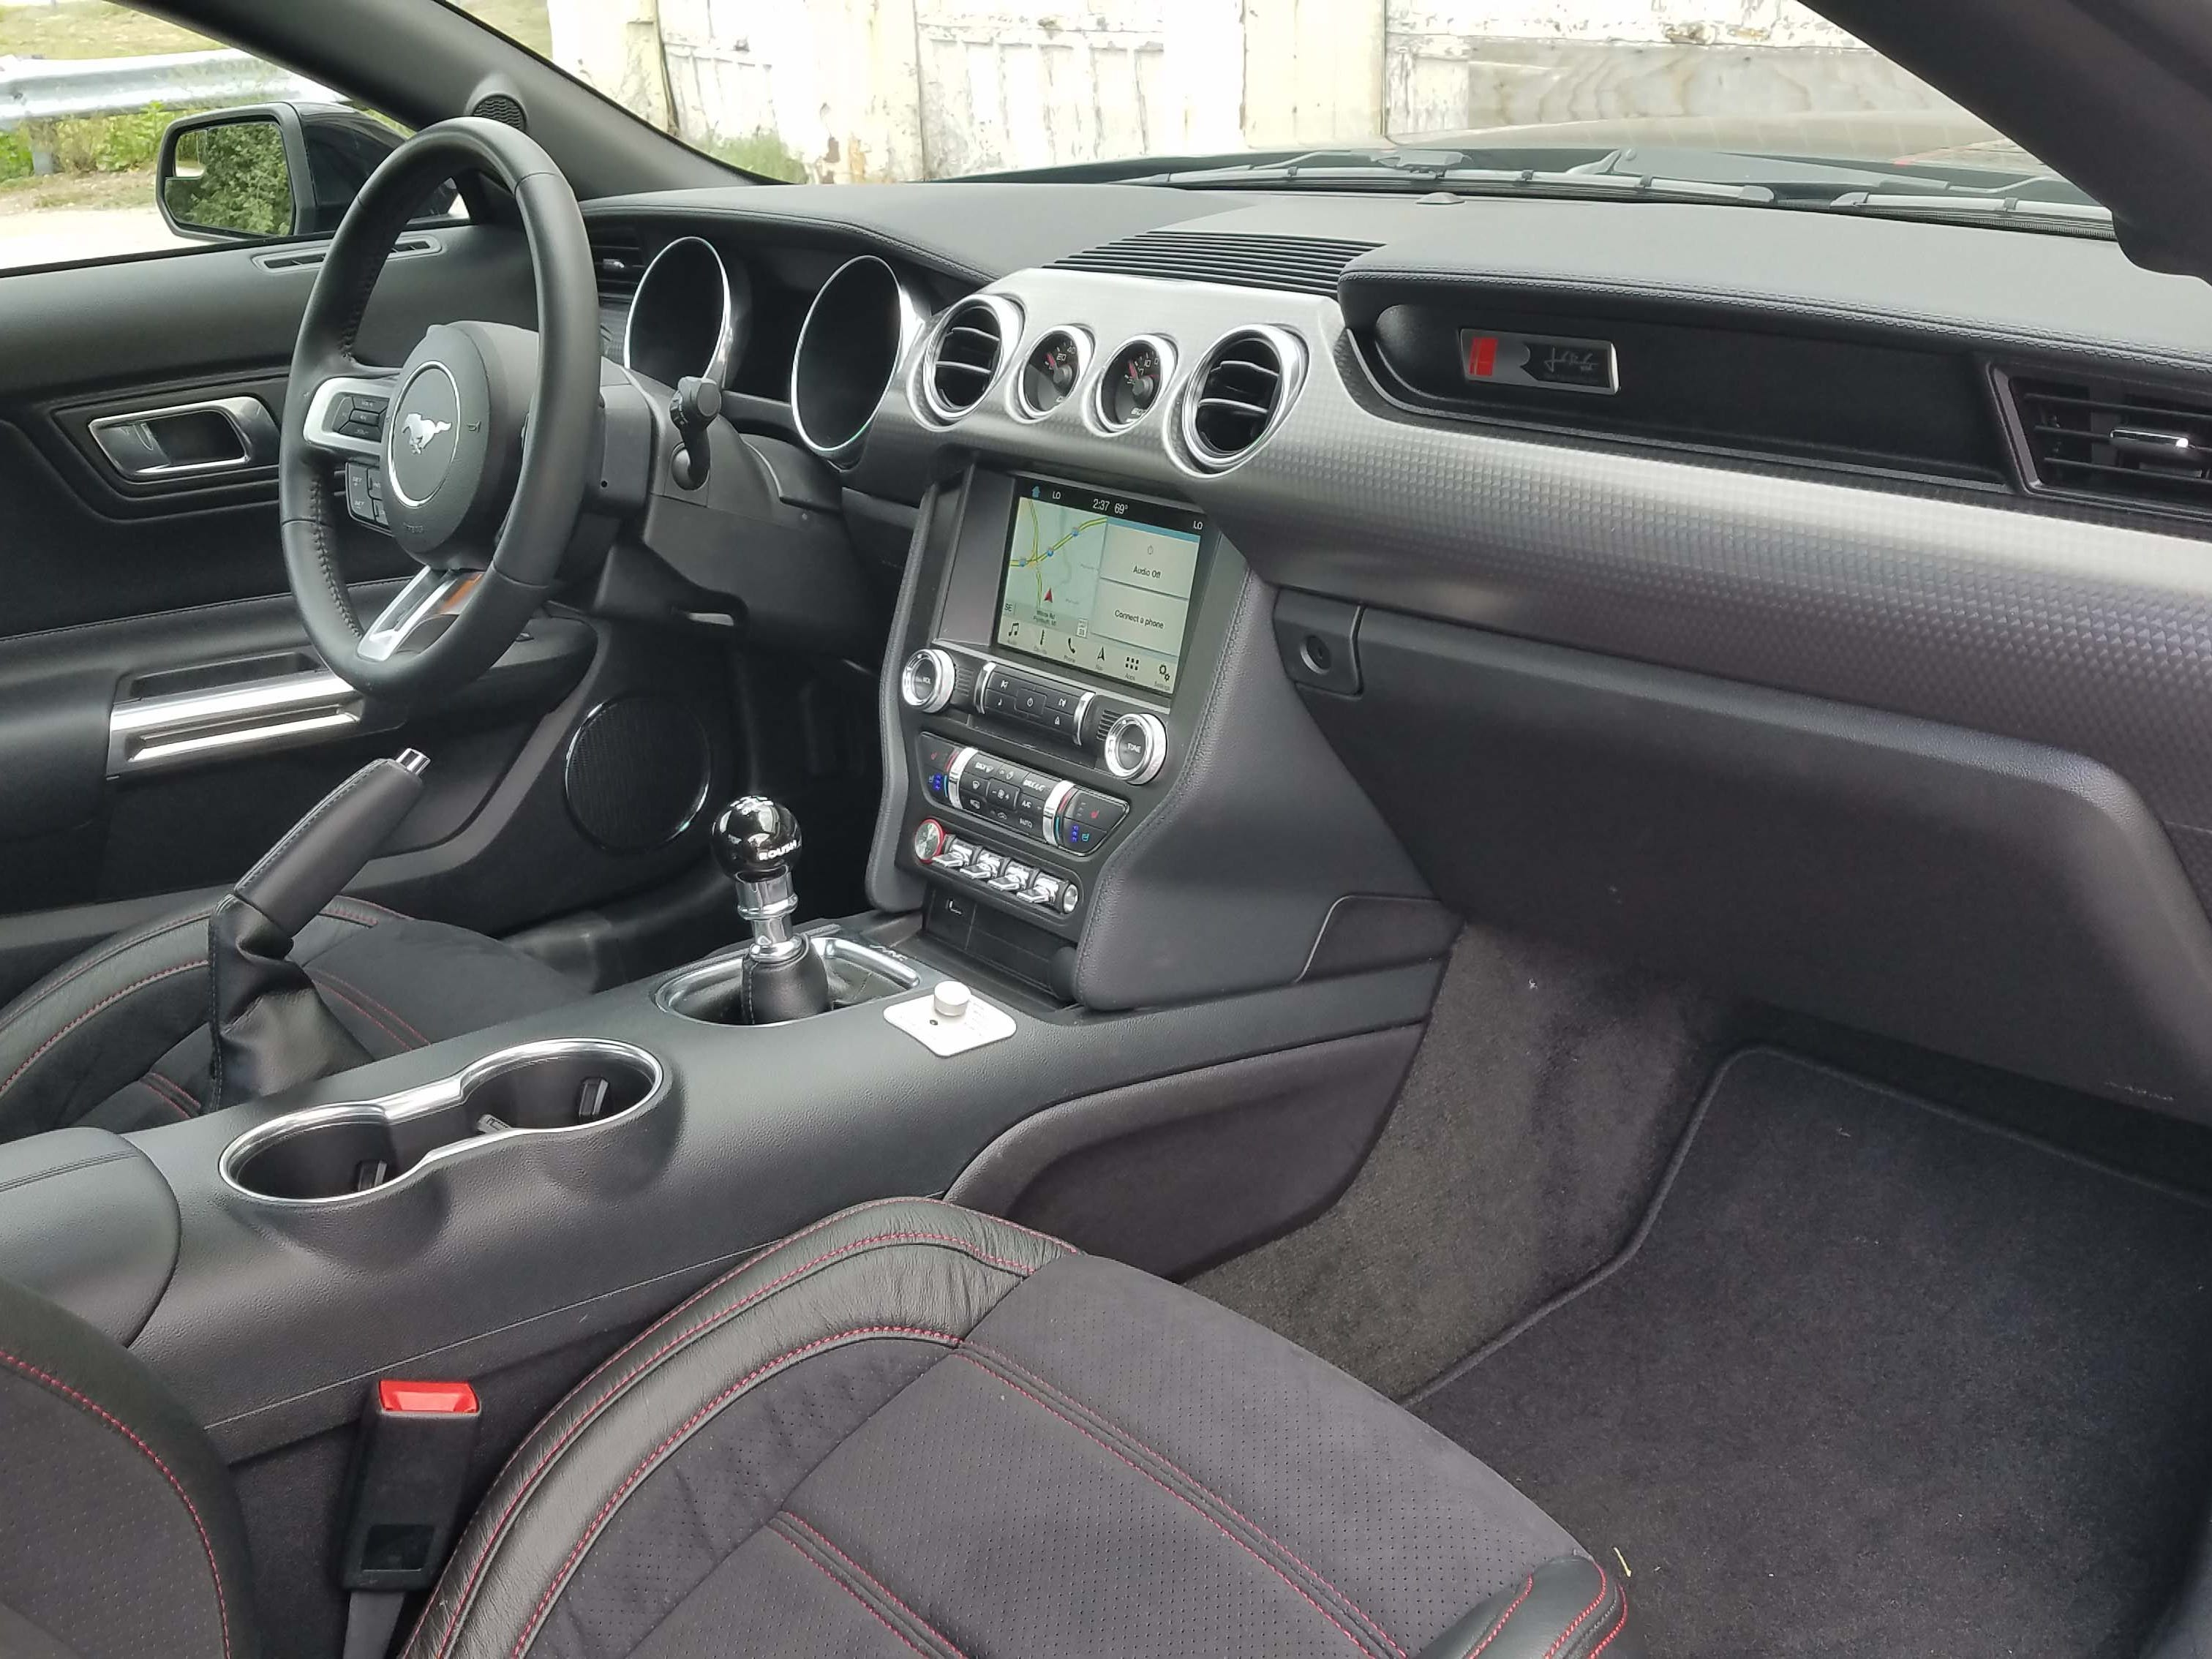 The interior of the 2018 Roush Jackhammer Mustang Jackhammer dash mediallion and serial number, sill badging, and the must-have active exhaust option with multiple exhaust modes.